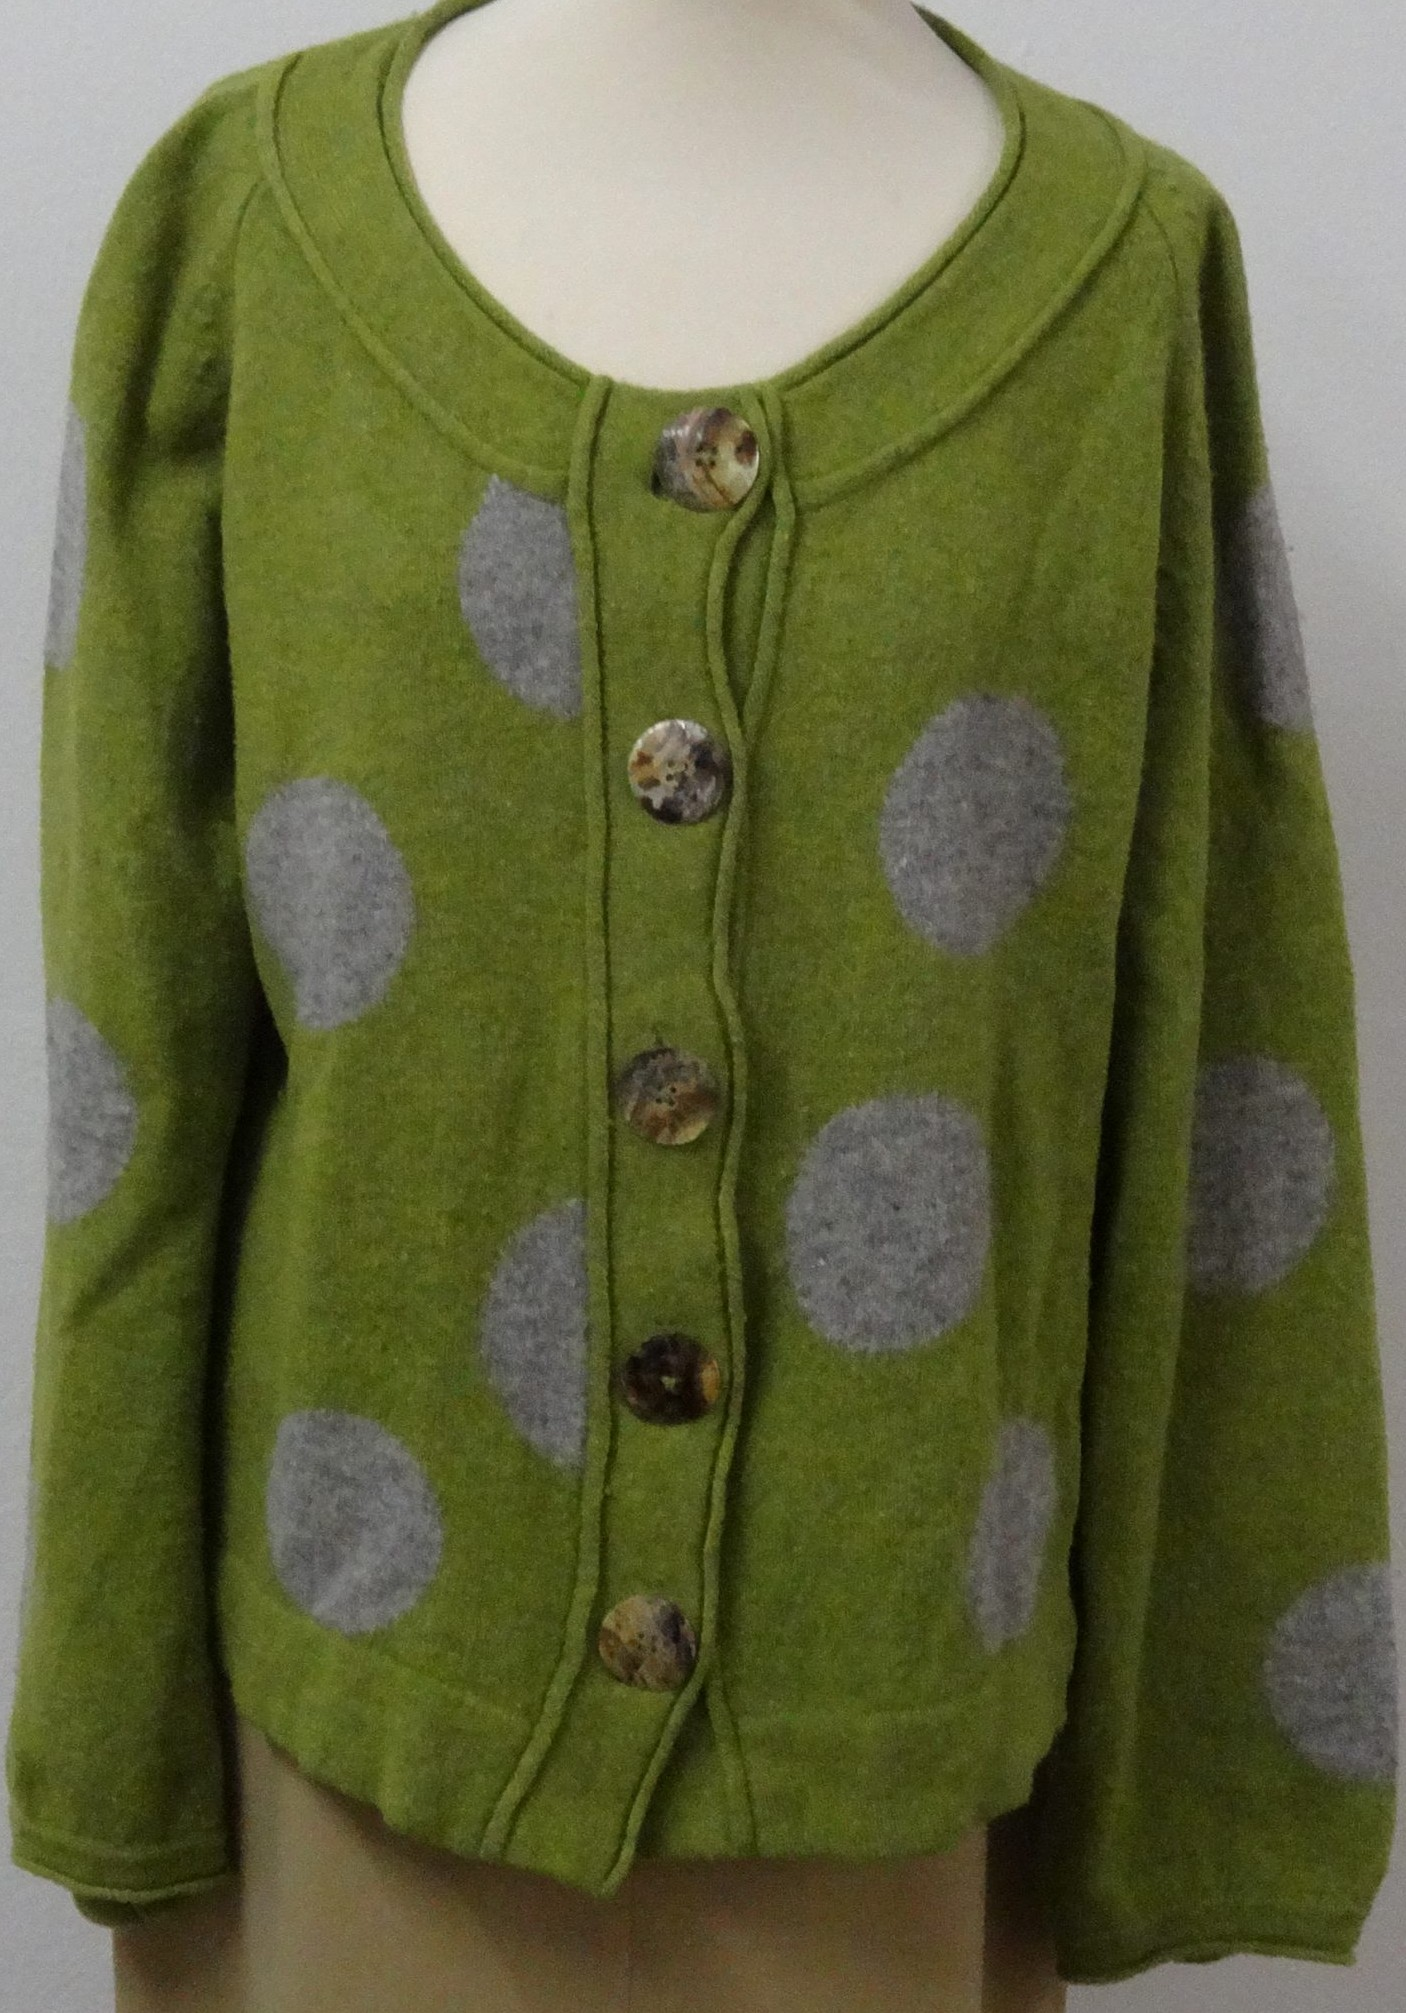 ffd511f0 Uld cardigan - Care & Share Vintage